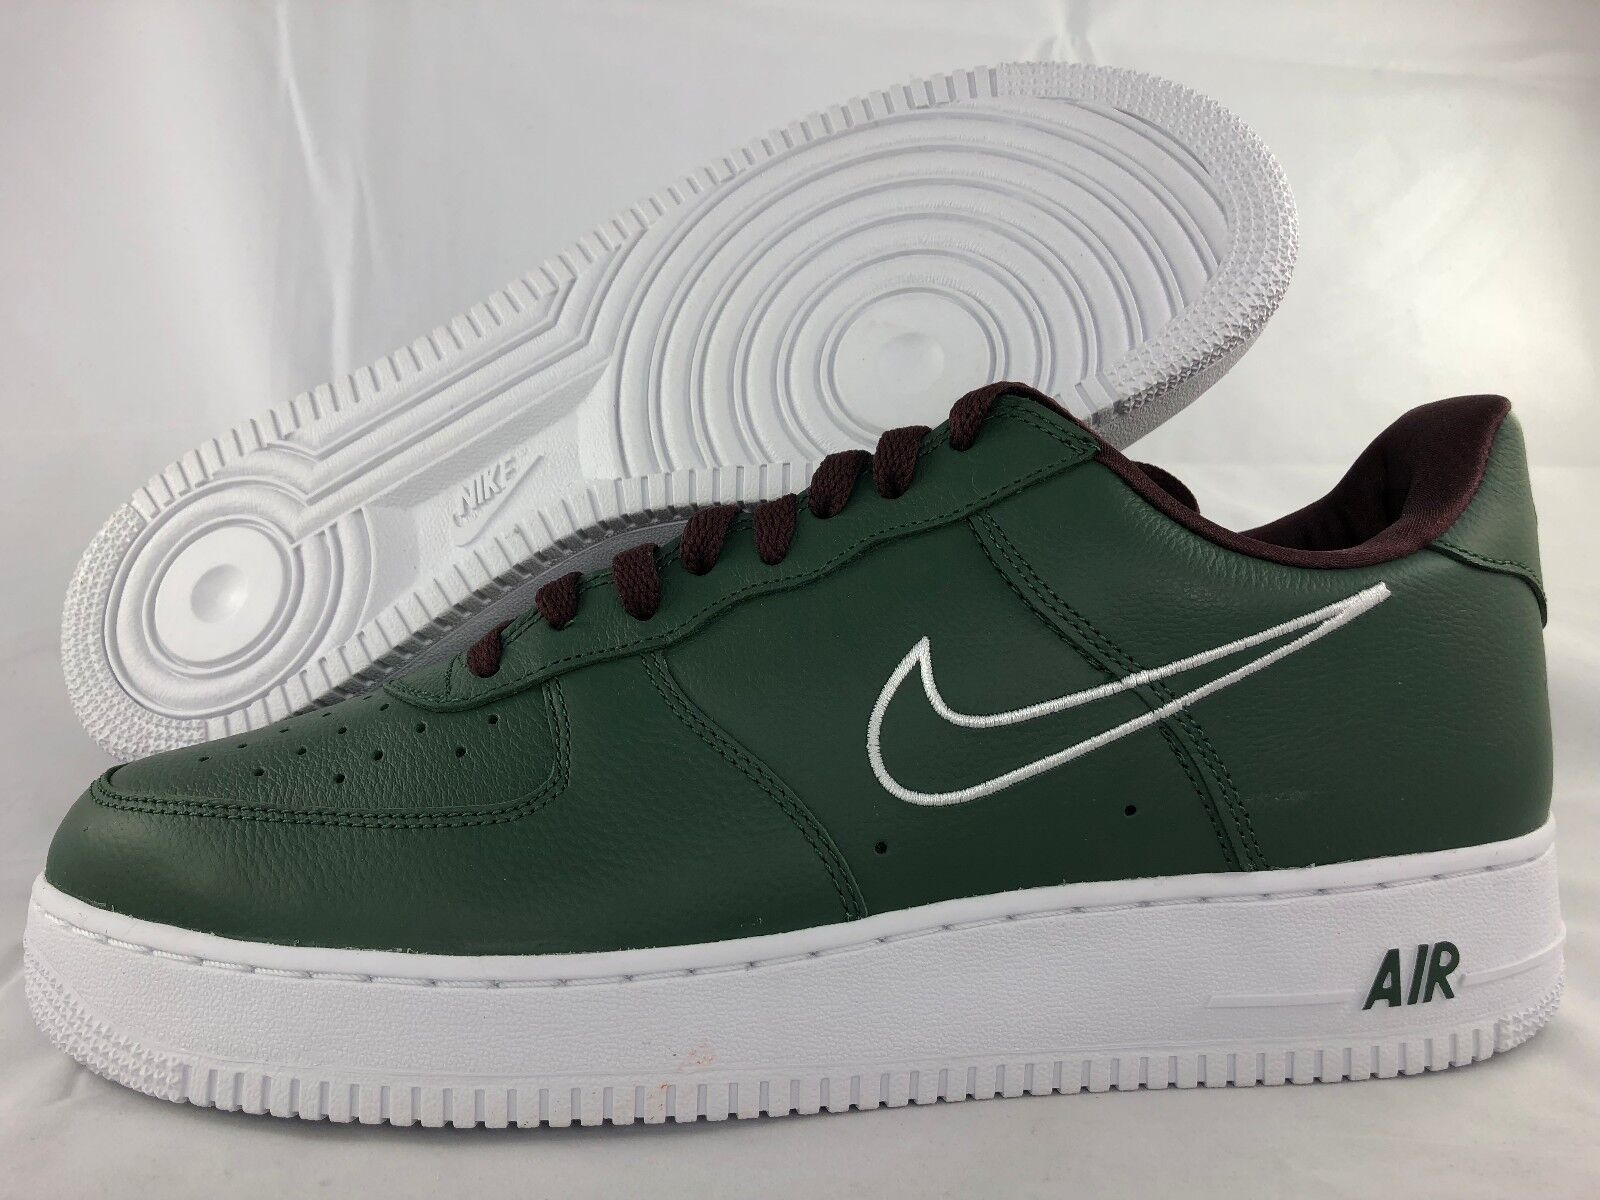 Nike Air Force Force Air 1 Low Retro Hong Kong Forest Green White 845053-300 Mens 8-14 NEW a6ac05